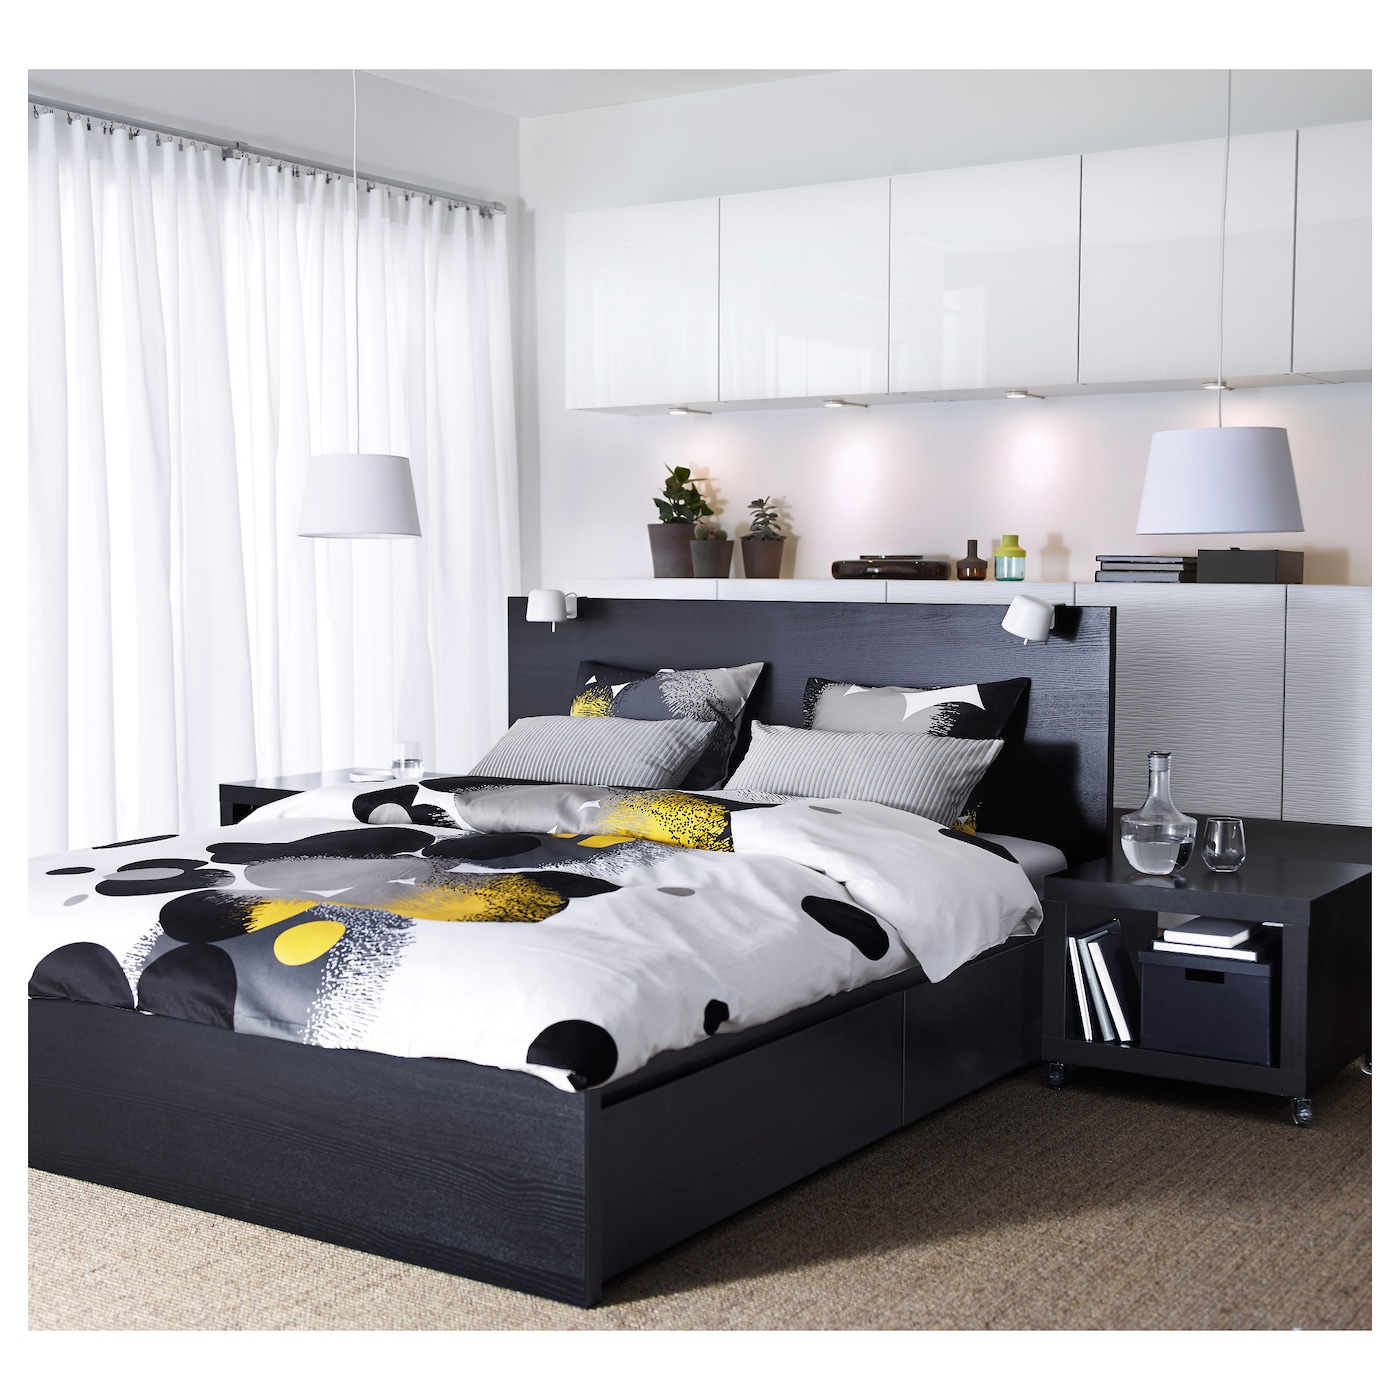 malm cadre de lit haut 2 rangements brun noir 180x200 cm ikea. Black Bedroom Furniture Sets. Home Design Ideas